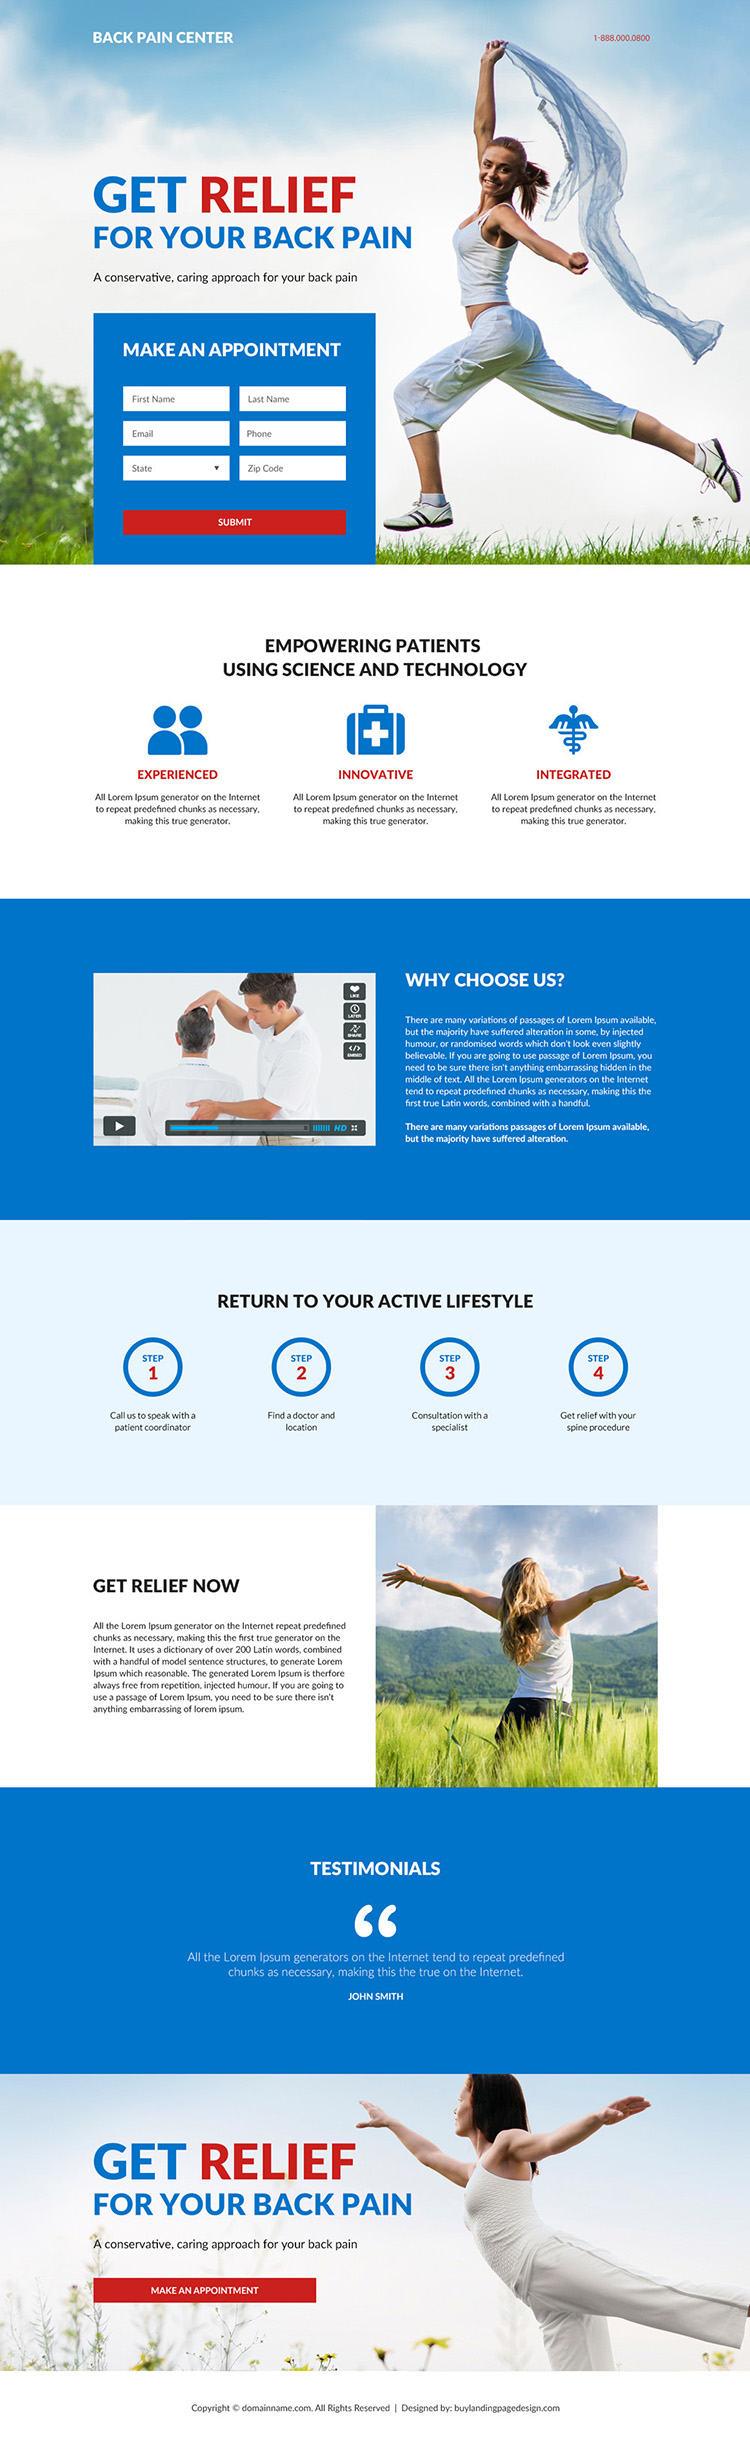 back pain relief center responsive landing page design